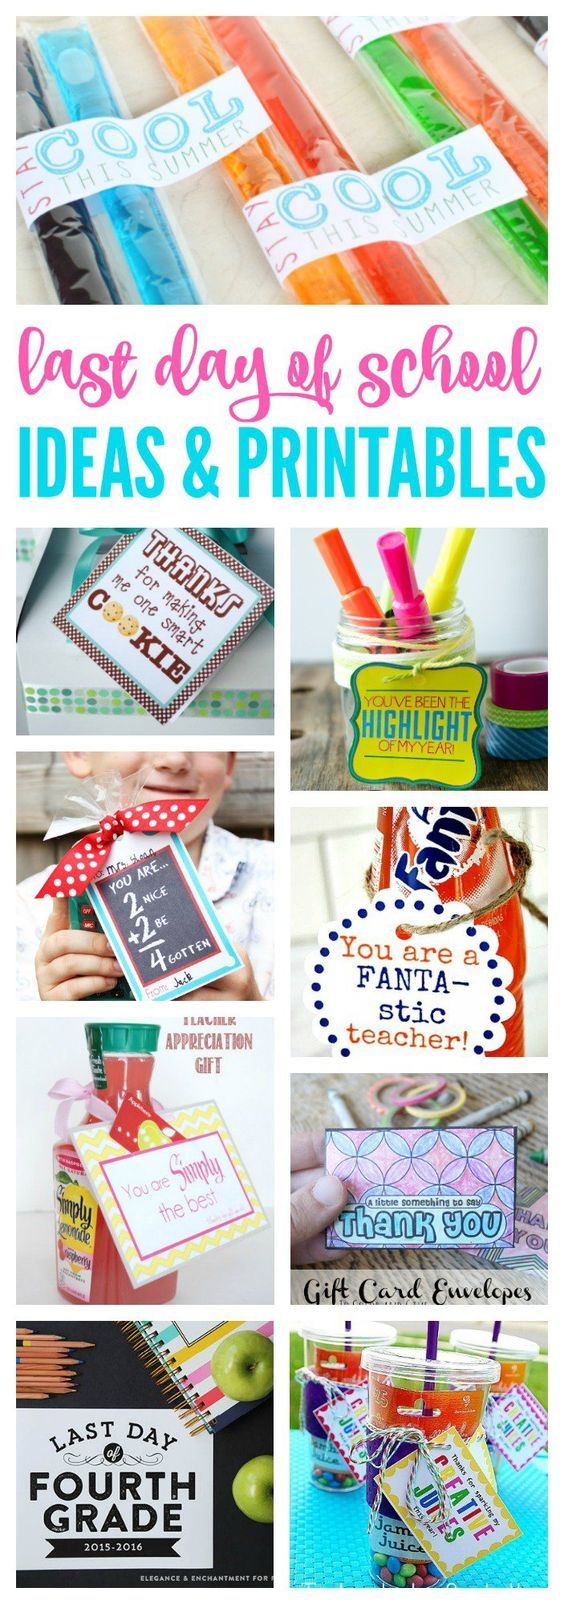 last day of school ideas printables for kids